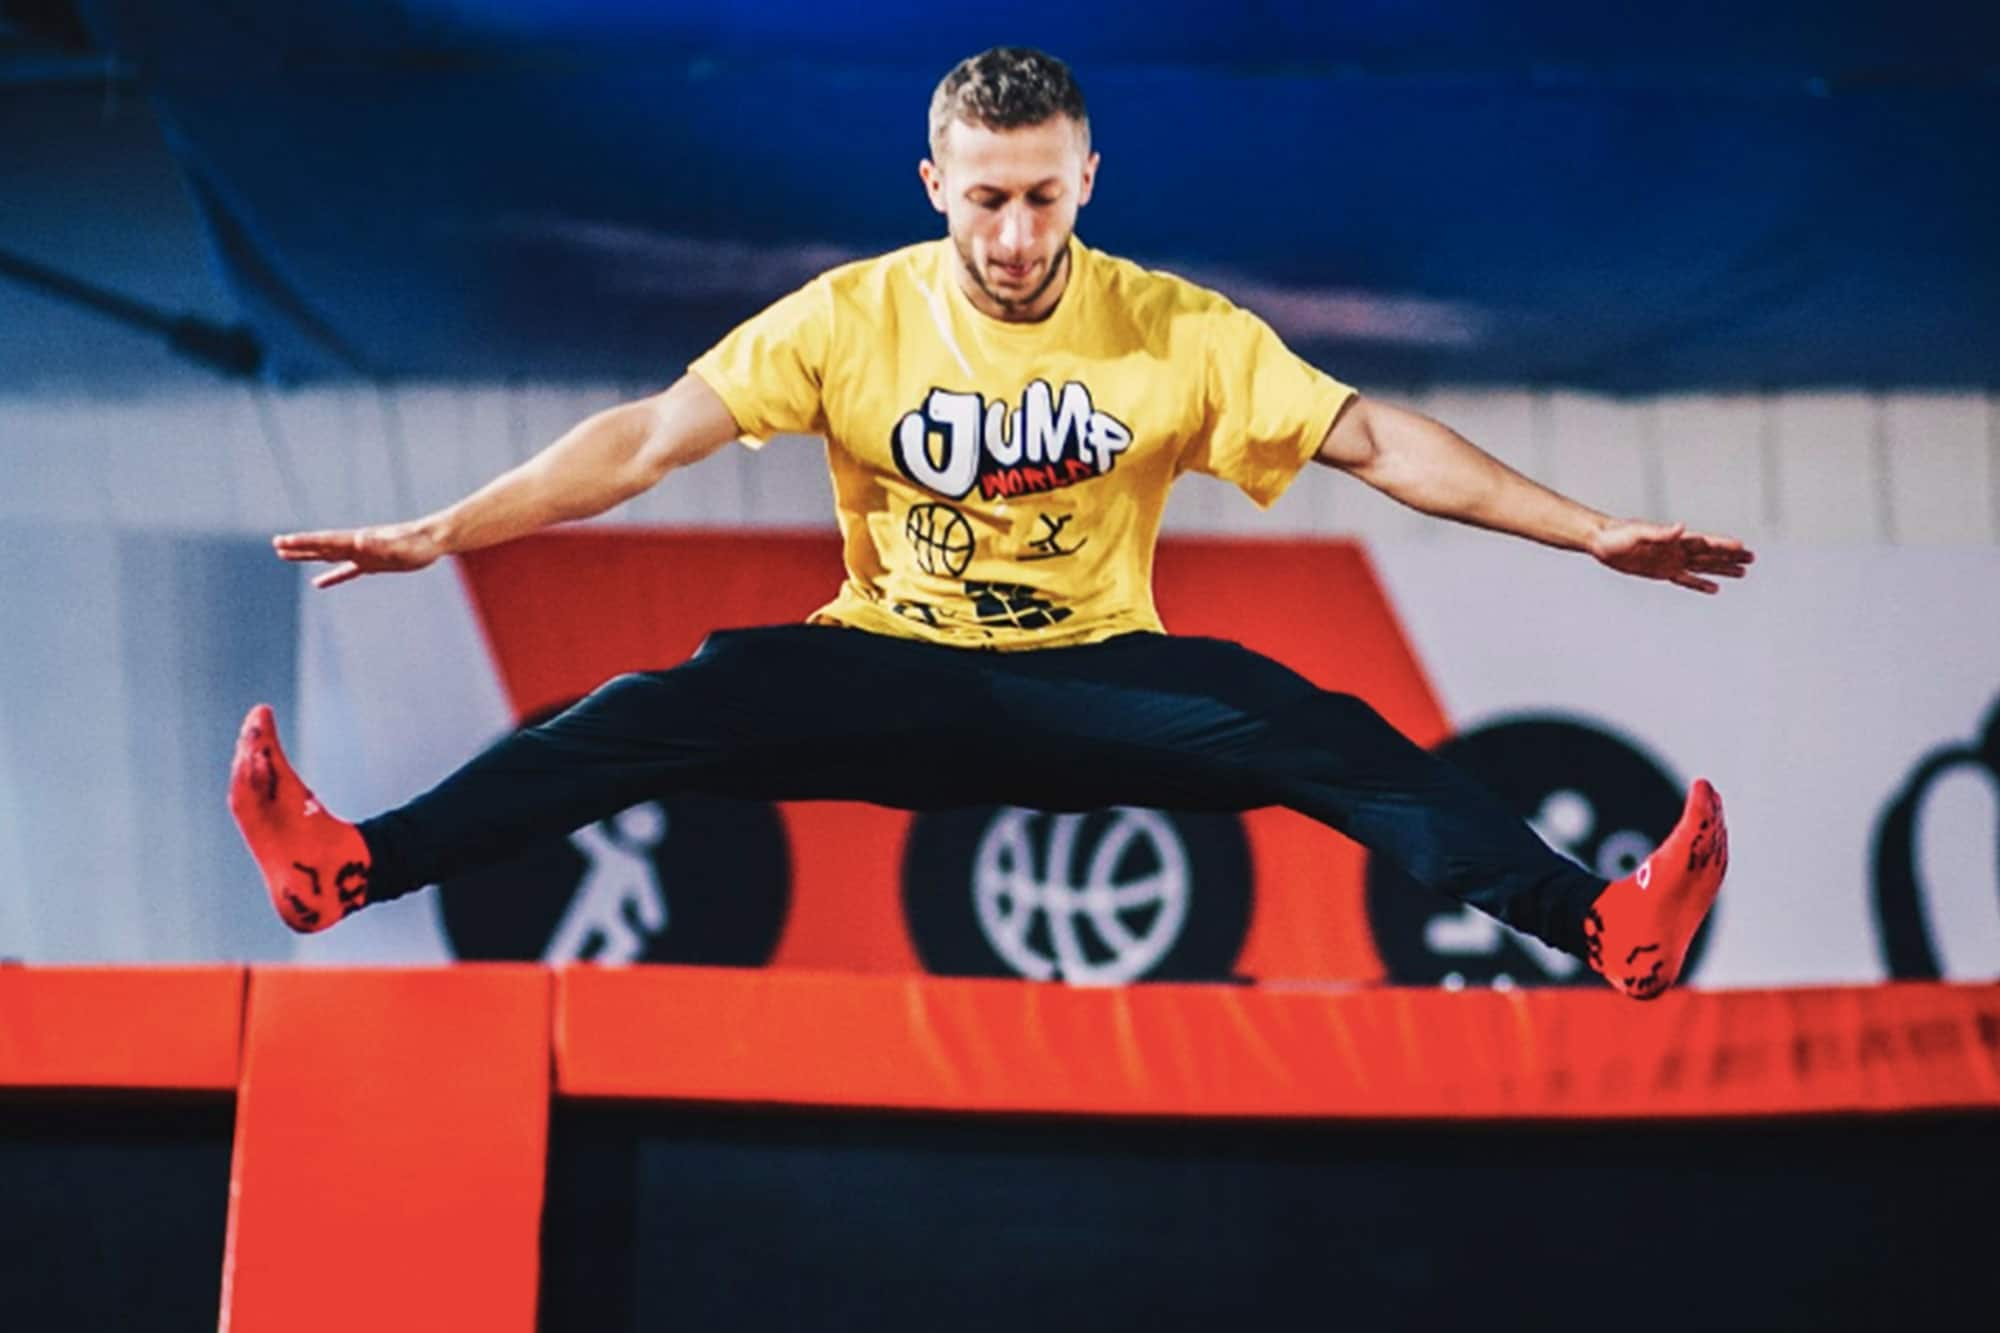 Have fun with your friends and challenge your body at our trampoline park in Wroclaw